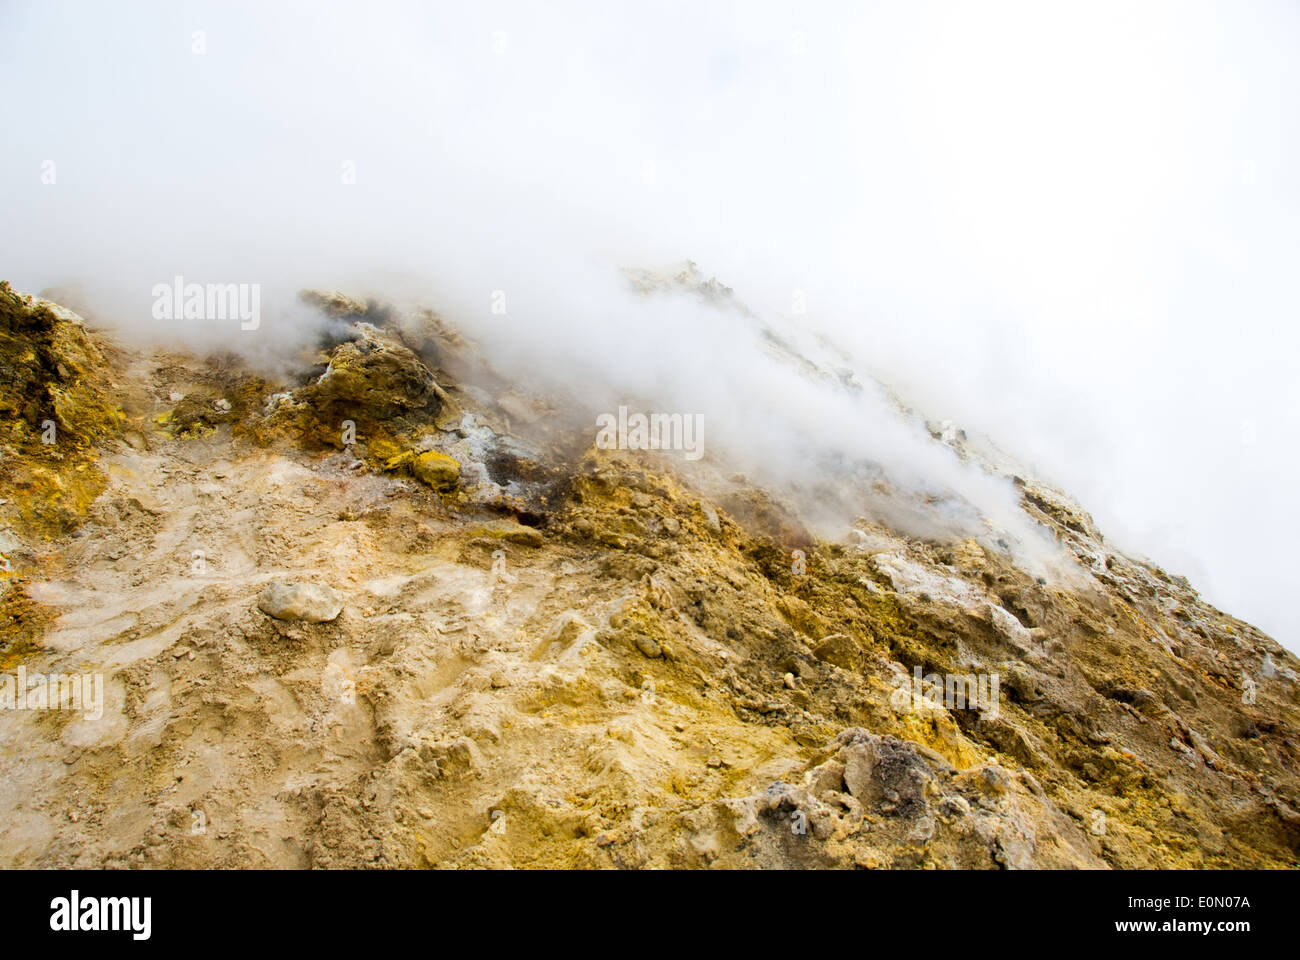 on the top of etna volcano the rock is covered with sulphur and became yellow, cloud of toxic gas spread from the crater - Stock Image